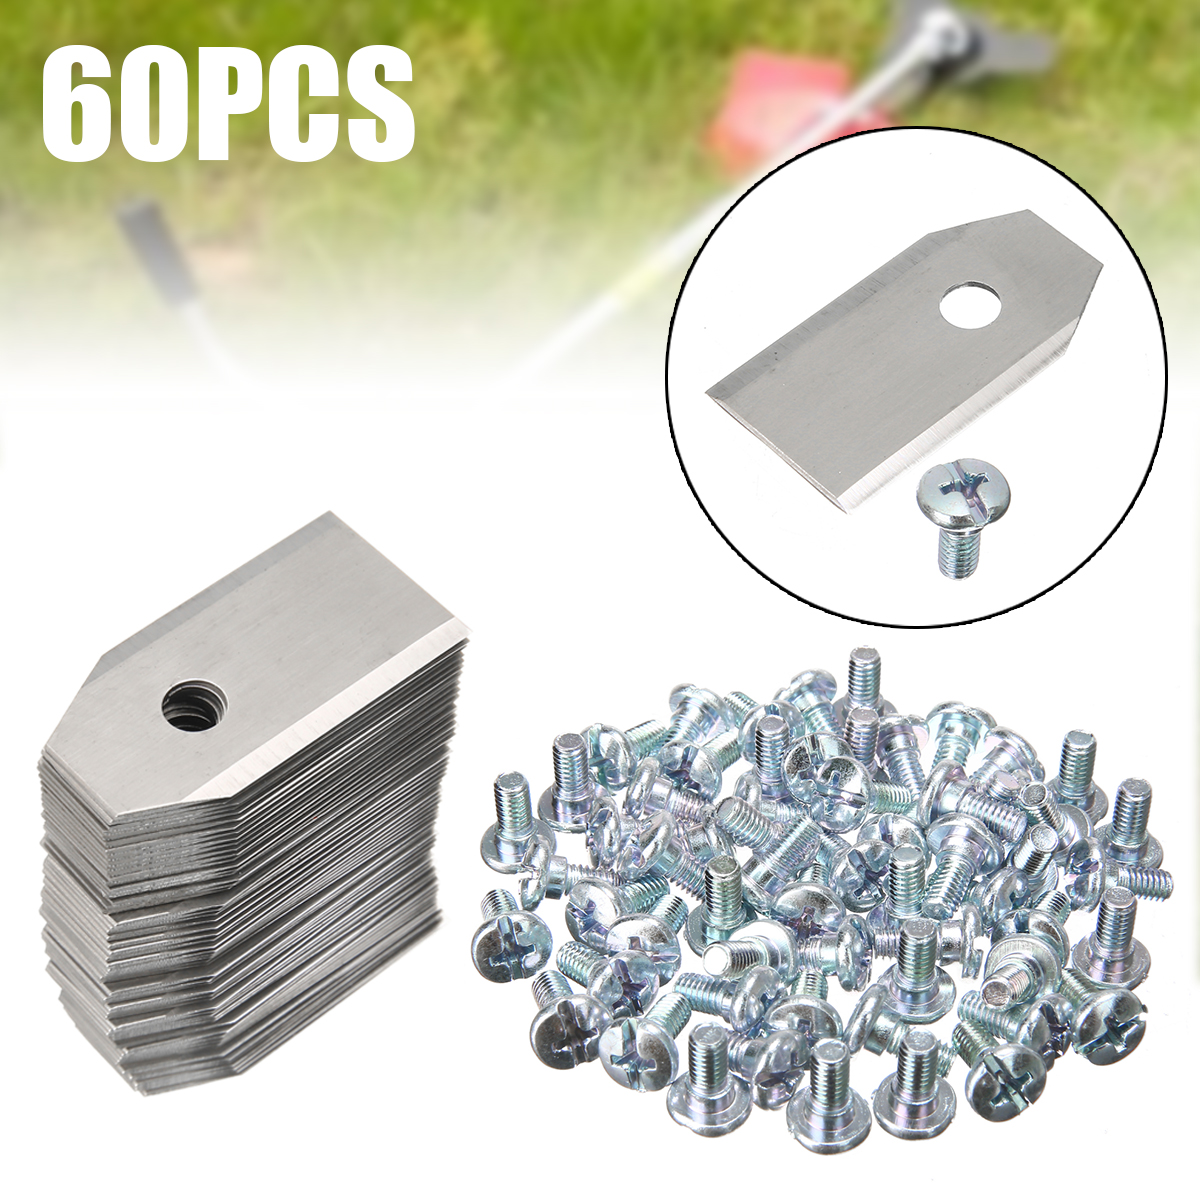 60Pcs 35x18x0.75mm Silver Stainless Steel Replacement Blade For Lawn Mower Parts For Robot Mower Garden Tools